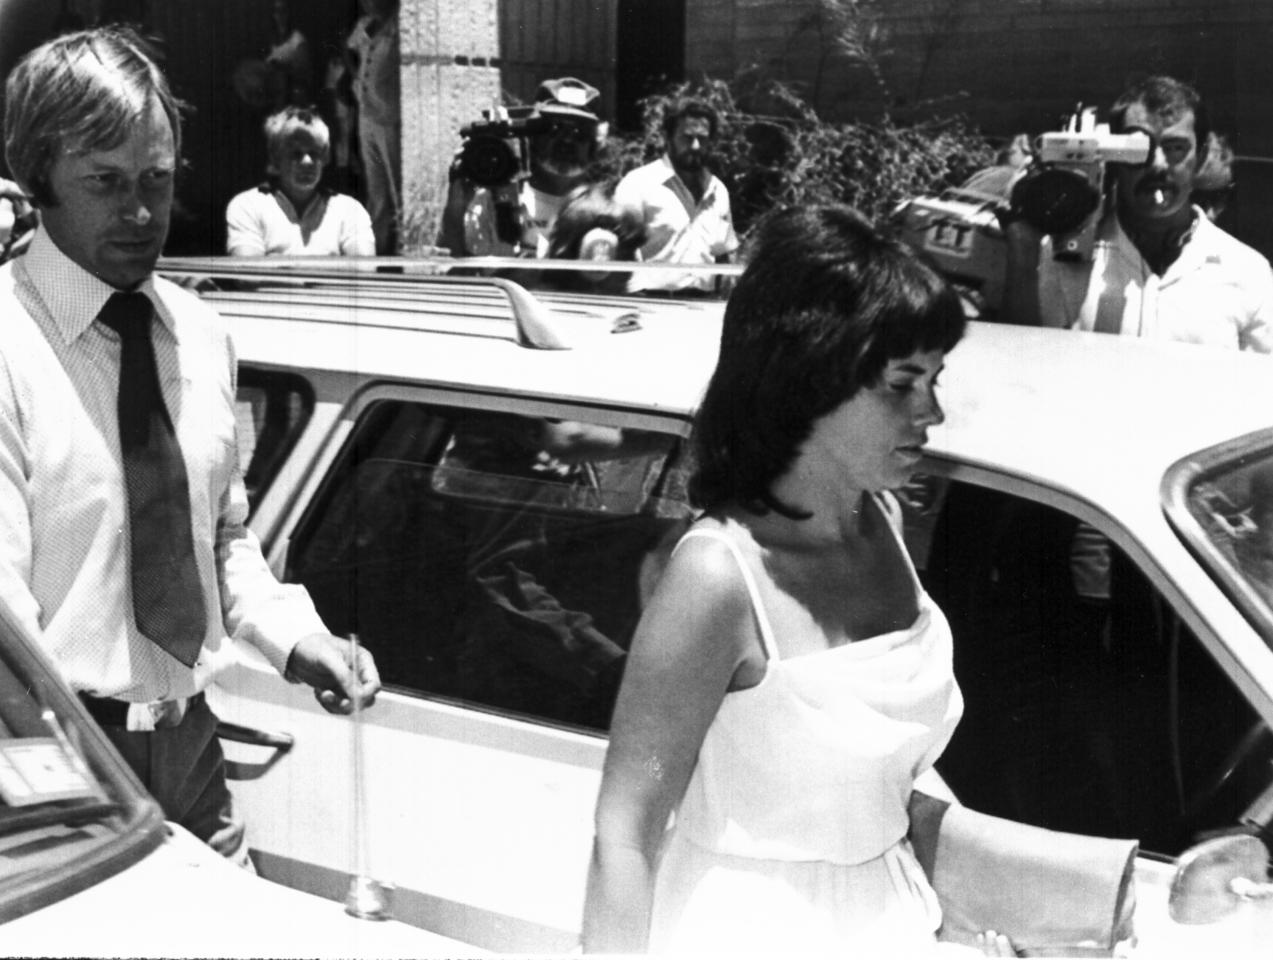 "FILE - In this Feb. 2, 1982, file photo, Michael and Lindy Chamberlain leave a courthouse in Alice Springs, Australia. ""The dingo's got my baby!"" With those panicked words, the mystery of Azaria Chamberlain's disappearance in the Australian Outback in 1980 became the most notorious, divisive and baffling legal drama in the country's history. Had a wild dog really taken the baby? Or had Azaria's mother, Lindy, slit her daughter's throat and buried her in the desert? Thirty-two years later, Australian officials hope to finally, definitively, determine how Azaria died when the Northern Territory coroner opens a fourth inquest on Friday, Feb. 24, 2012. (AP Photo)"